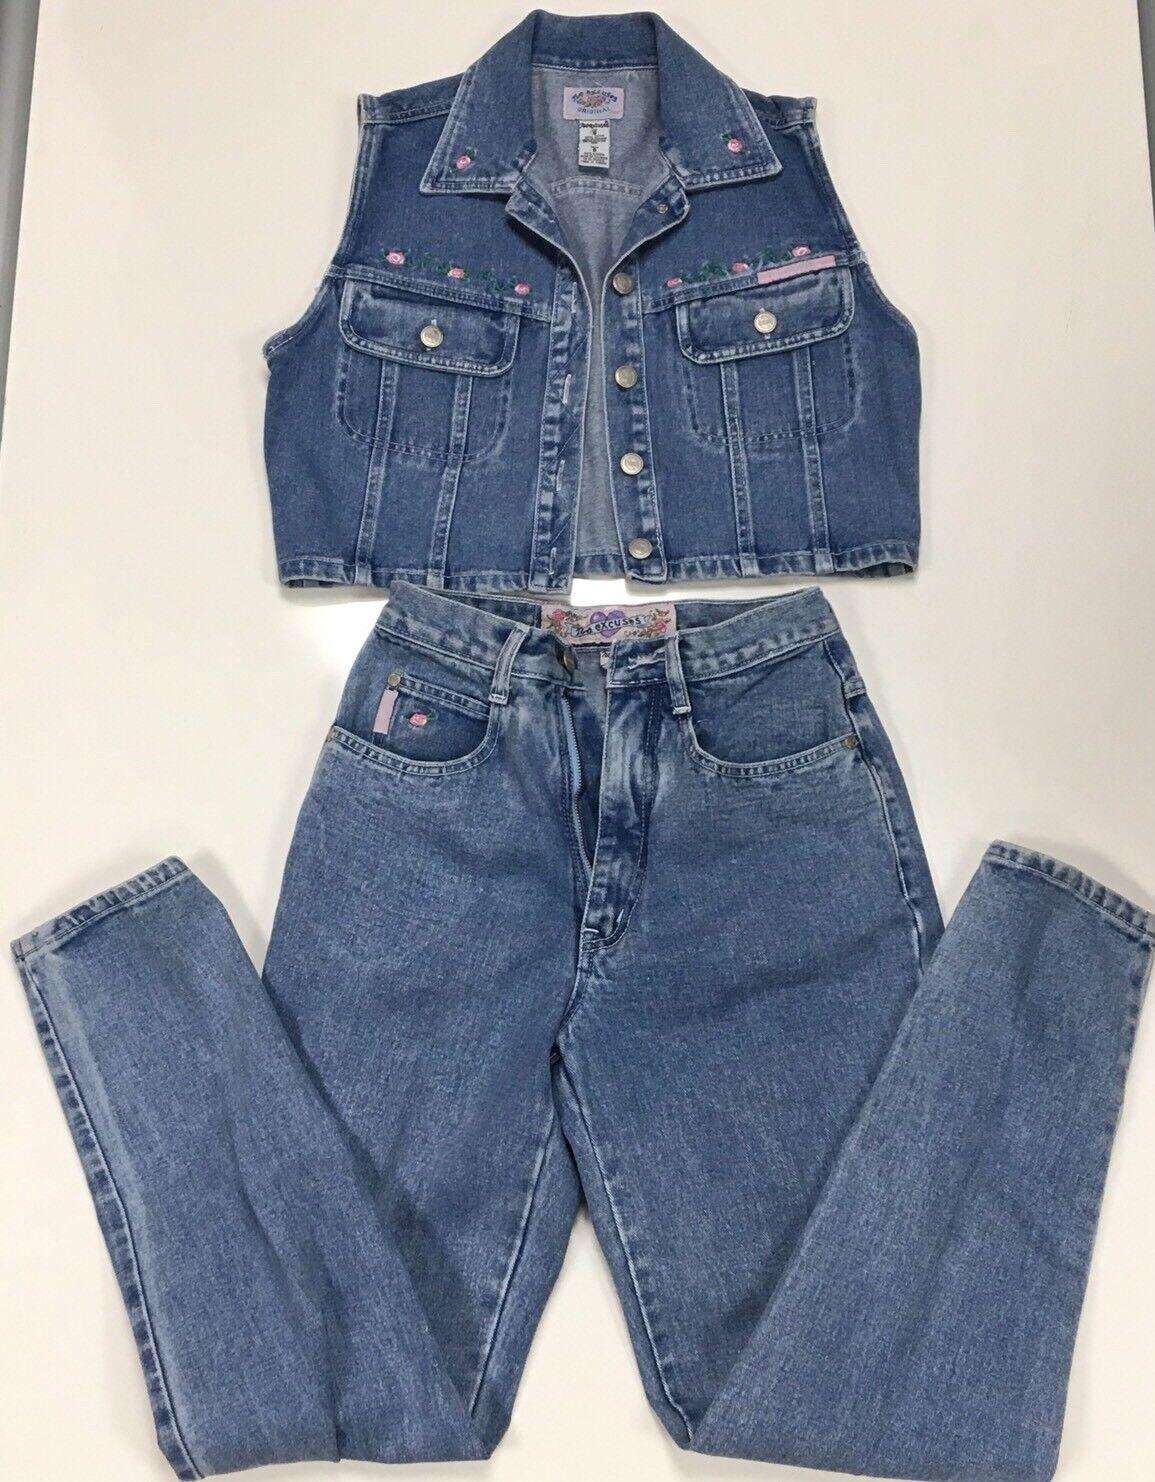 Vintage No Excuses womens Denim vest and jeans vest Sz S, pants sz 7 8